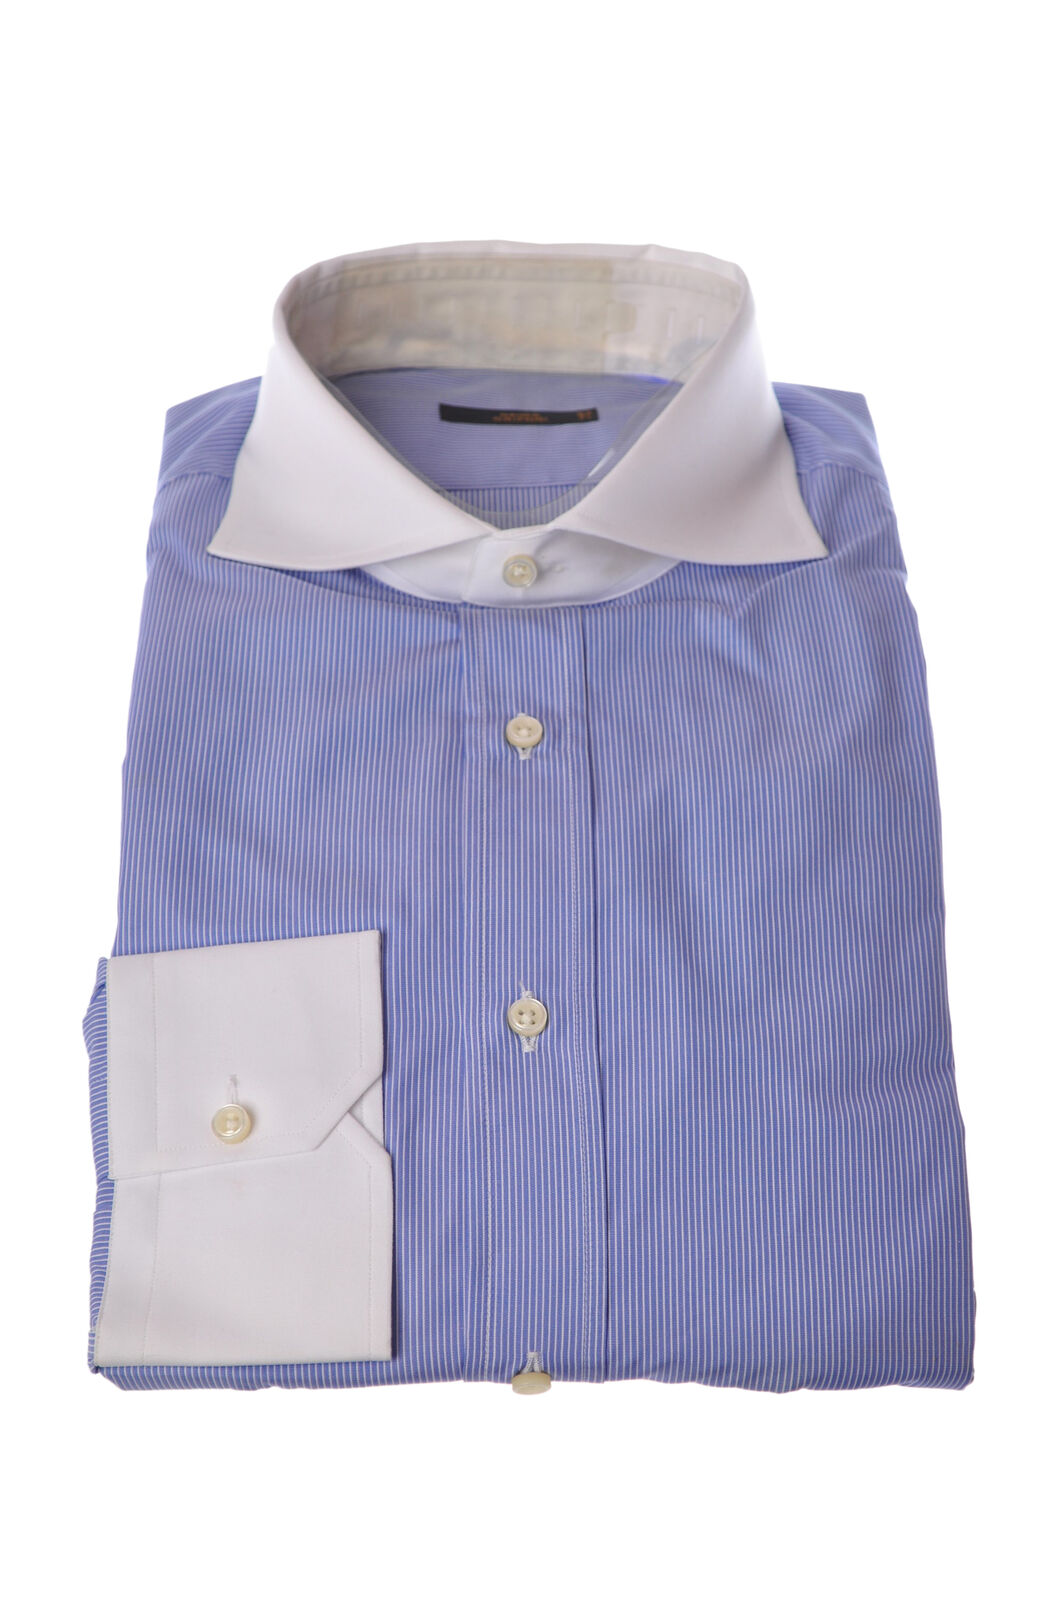 Mauro grifoni  -  Shirt - Male - bluee - 2999704A184300